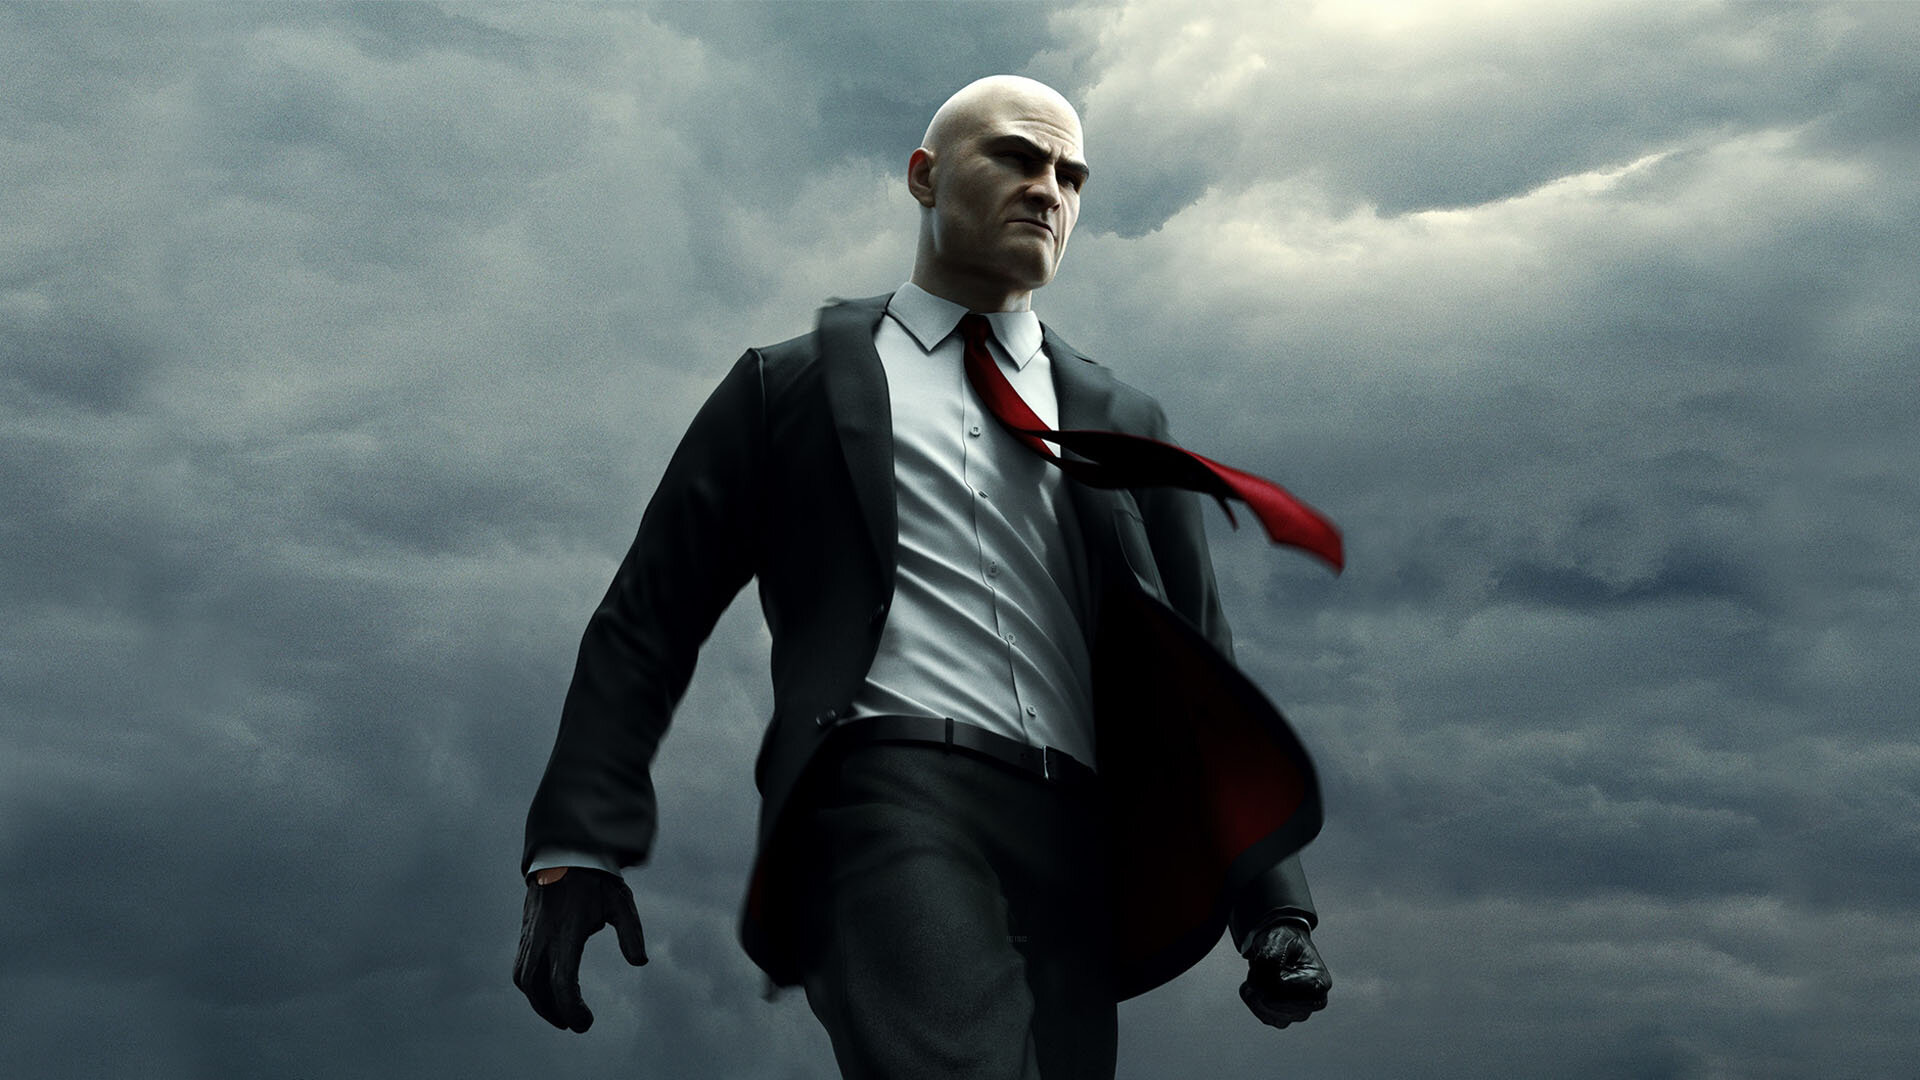 Hitman Blood Money And Absolution Are Getting Hd Remasters